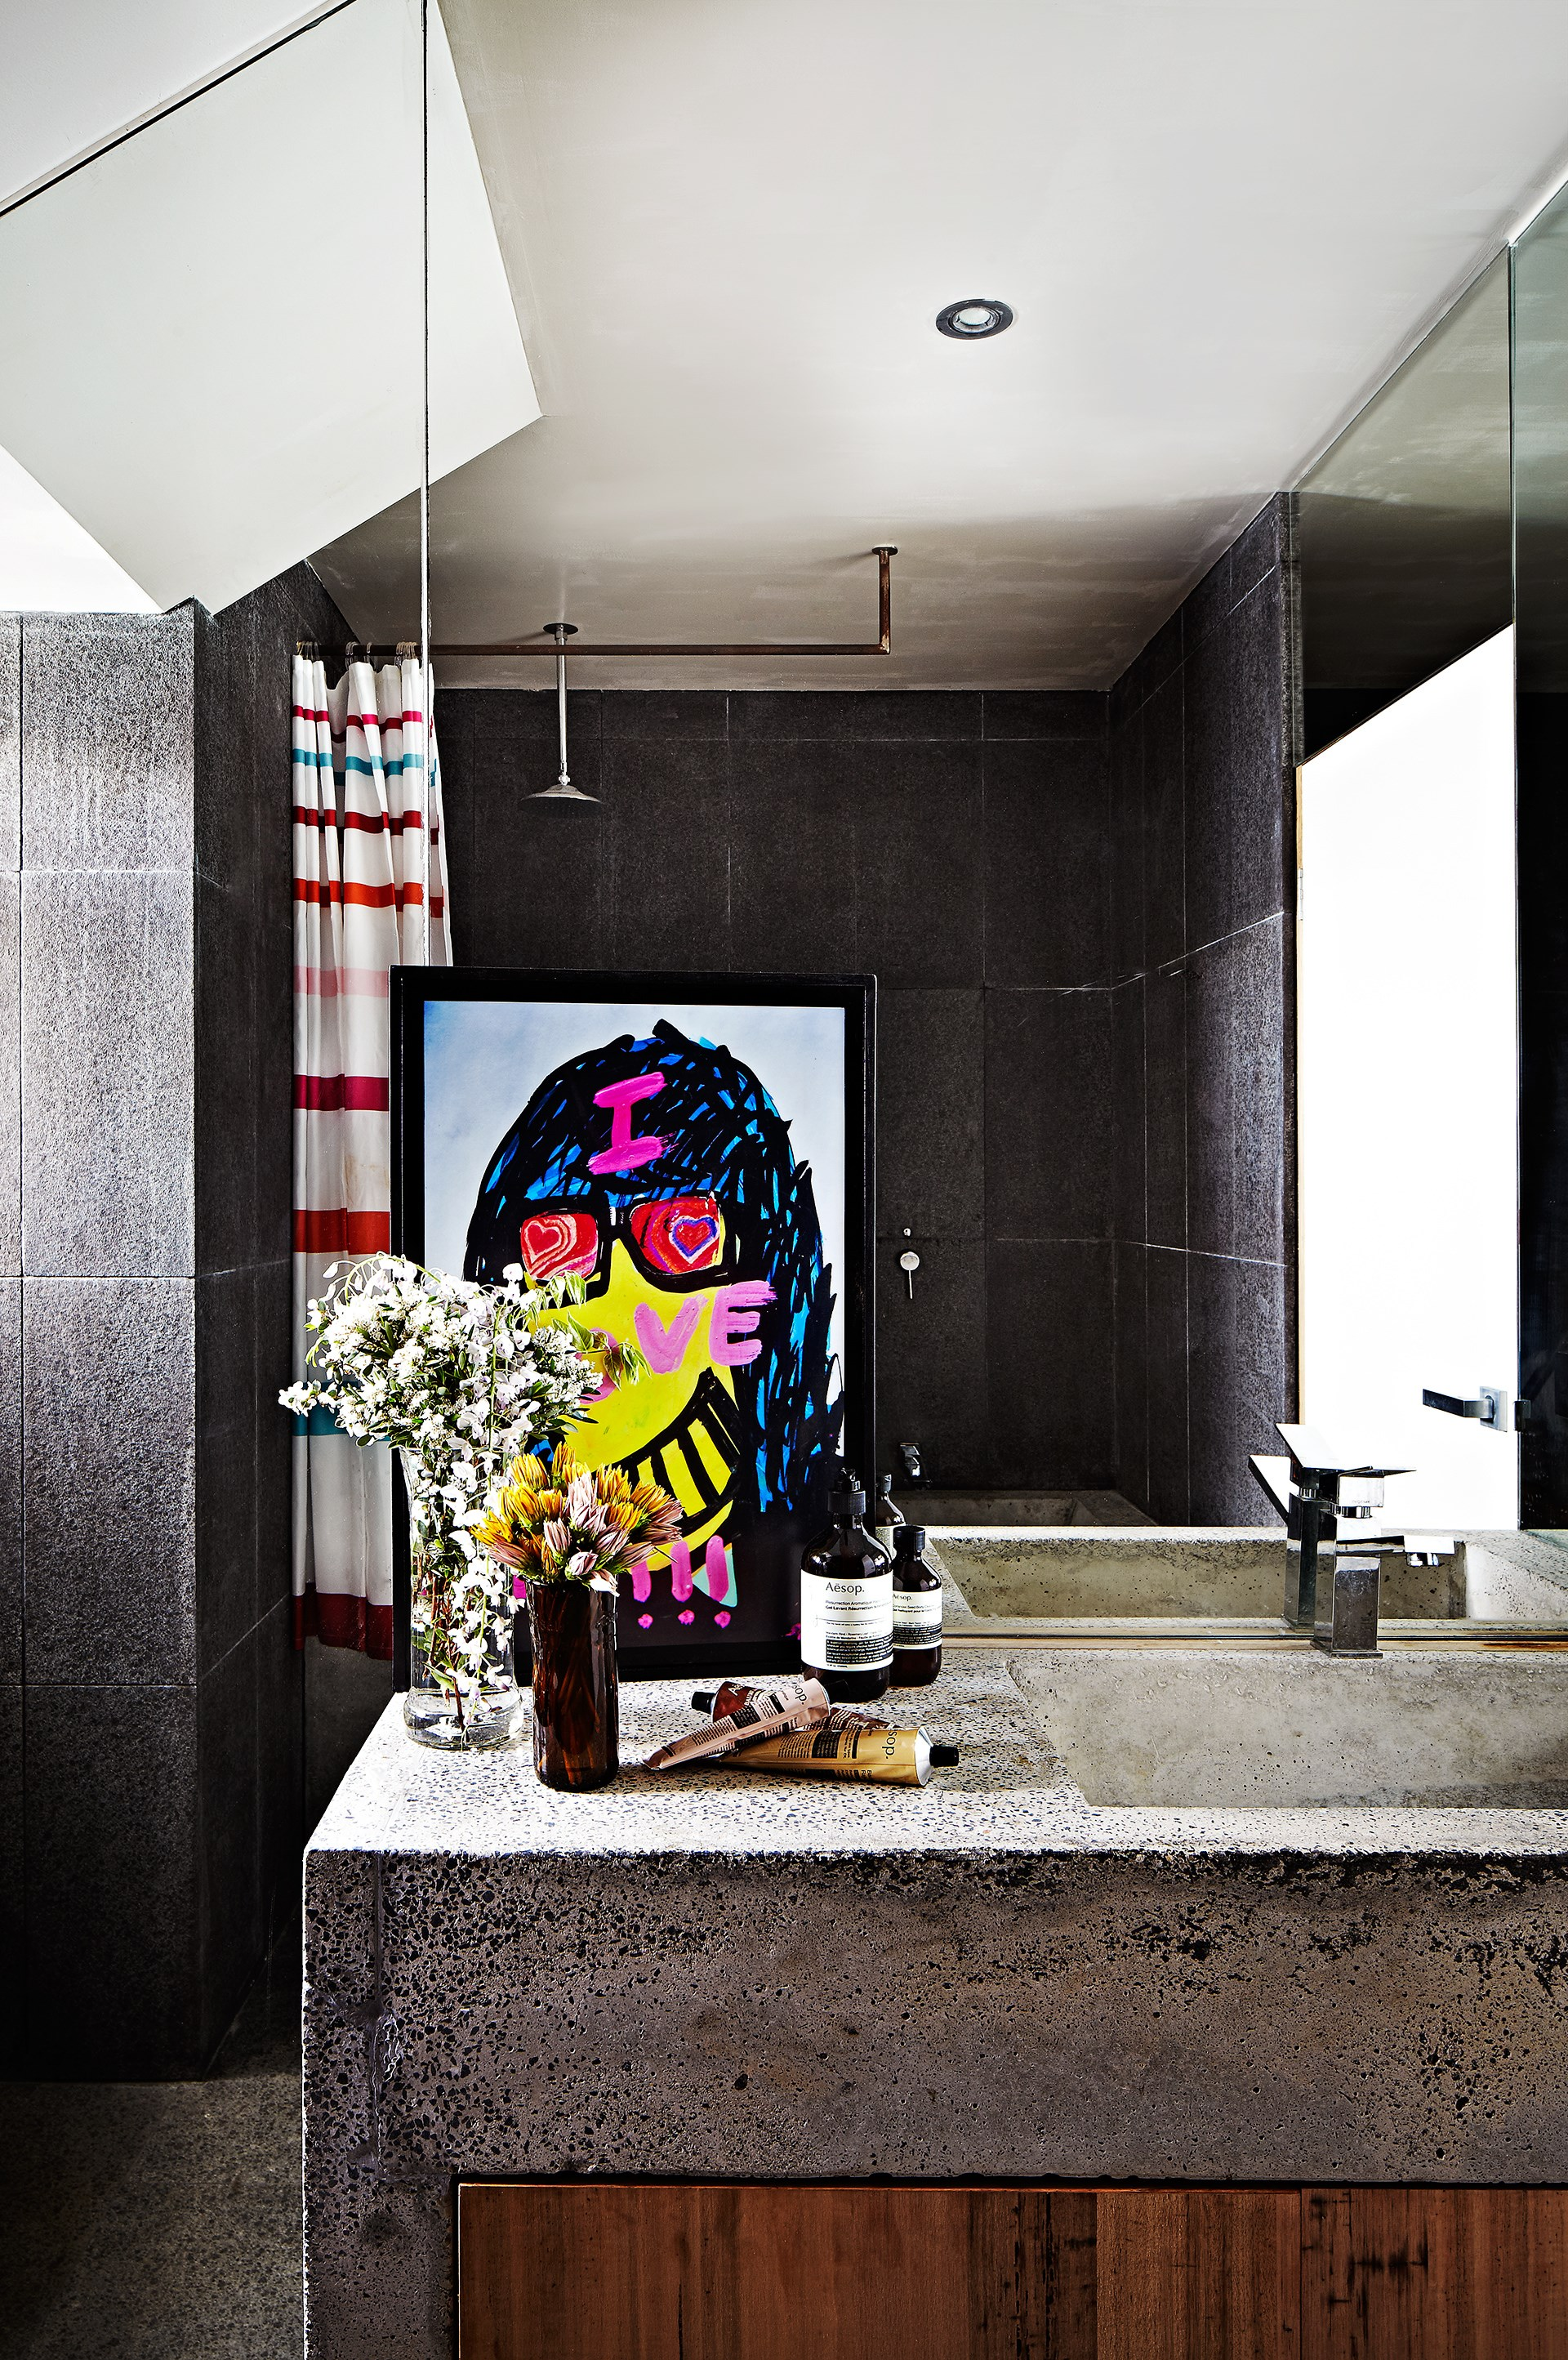 Inspired by their natural surroundings, the owners of this [coastal Victorian home](http://www.homestolove.com.au/the-home-of-kip-and-co-co-owner-kate-heppell-3596) incorporated a concrete benchtop and bathtub into their bathroom for a raw-industrial feel. Photo: Armelle Habib